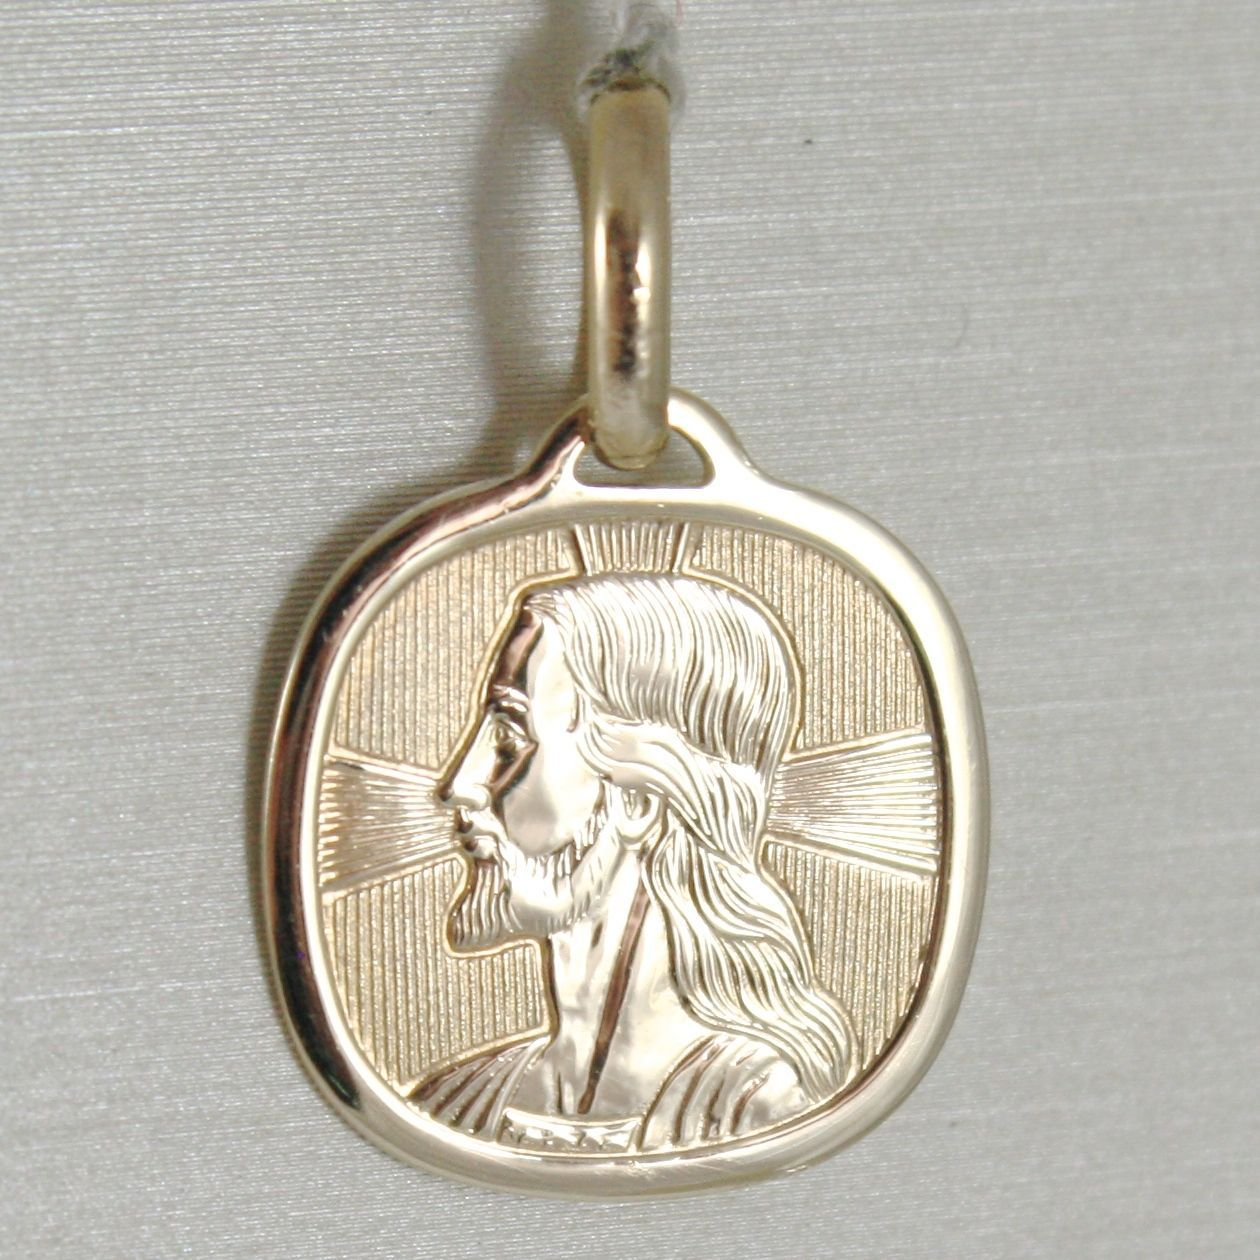 PENDANT MEDAL YELLOW GOLD 375 9K, VOLTO CHRIST, SQUARED, MADE IN ITALY